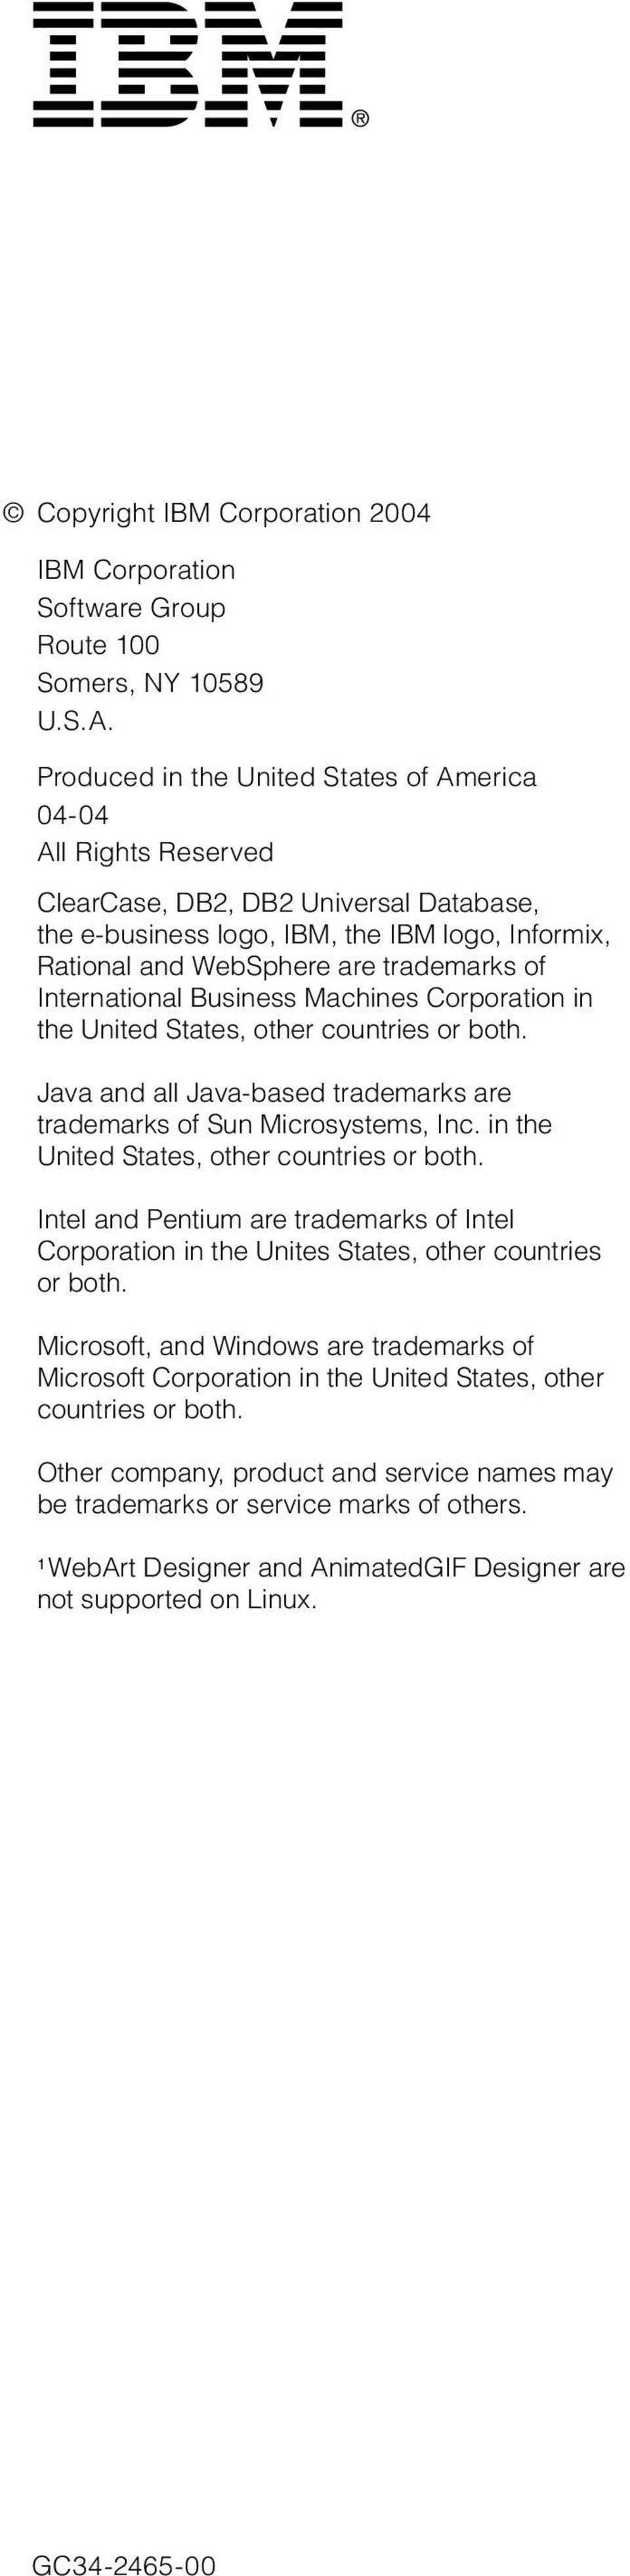 International Business Machines Corporation in the United States, other countries or both. Java and all Java-based trademarks are trademarks of Sun Microsystems, Inc.